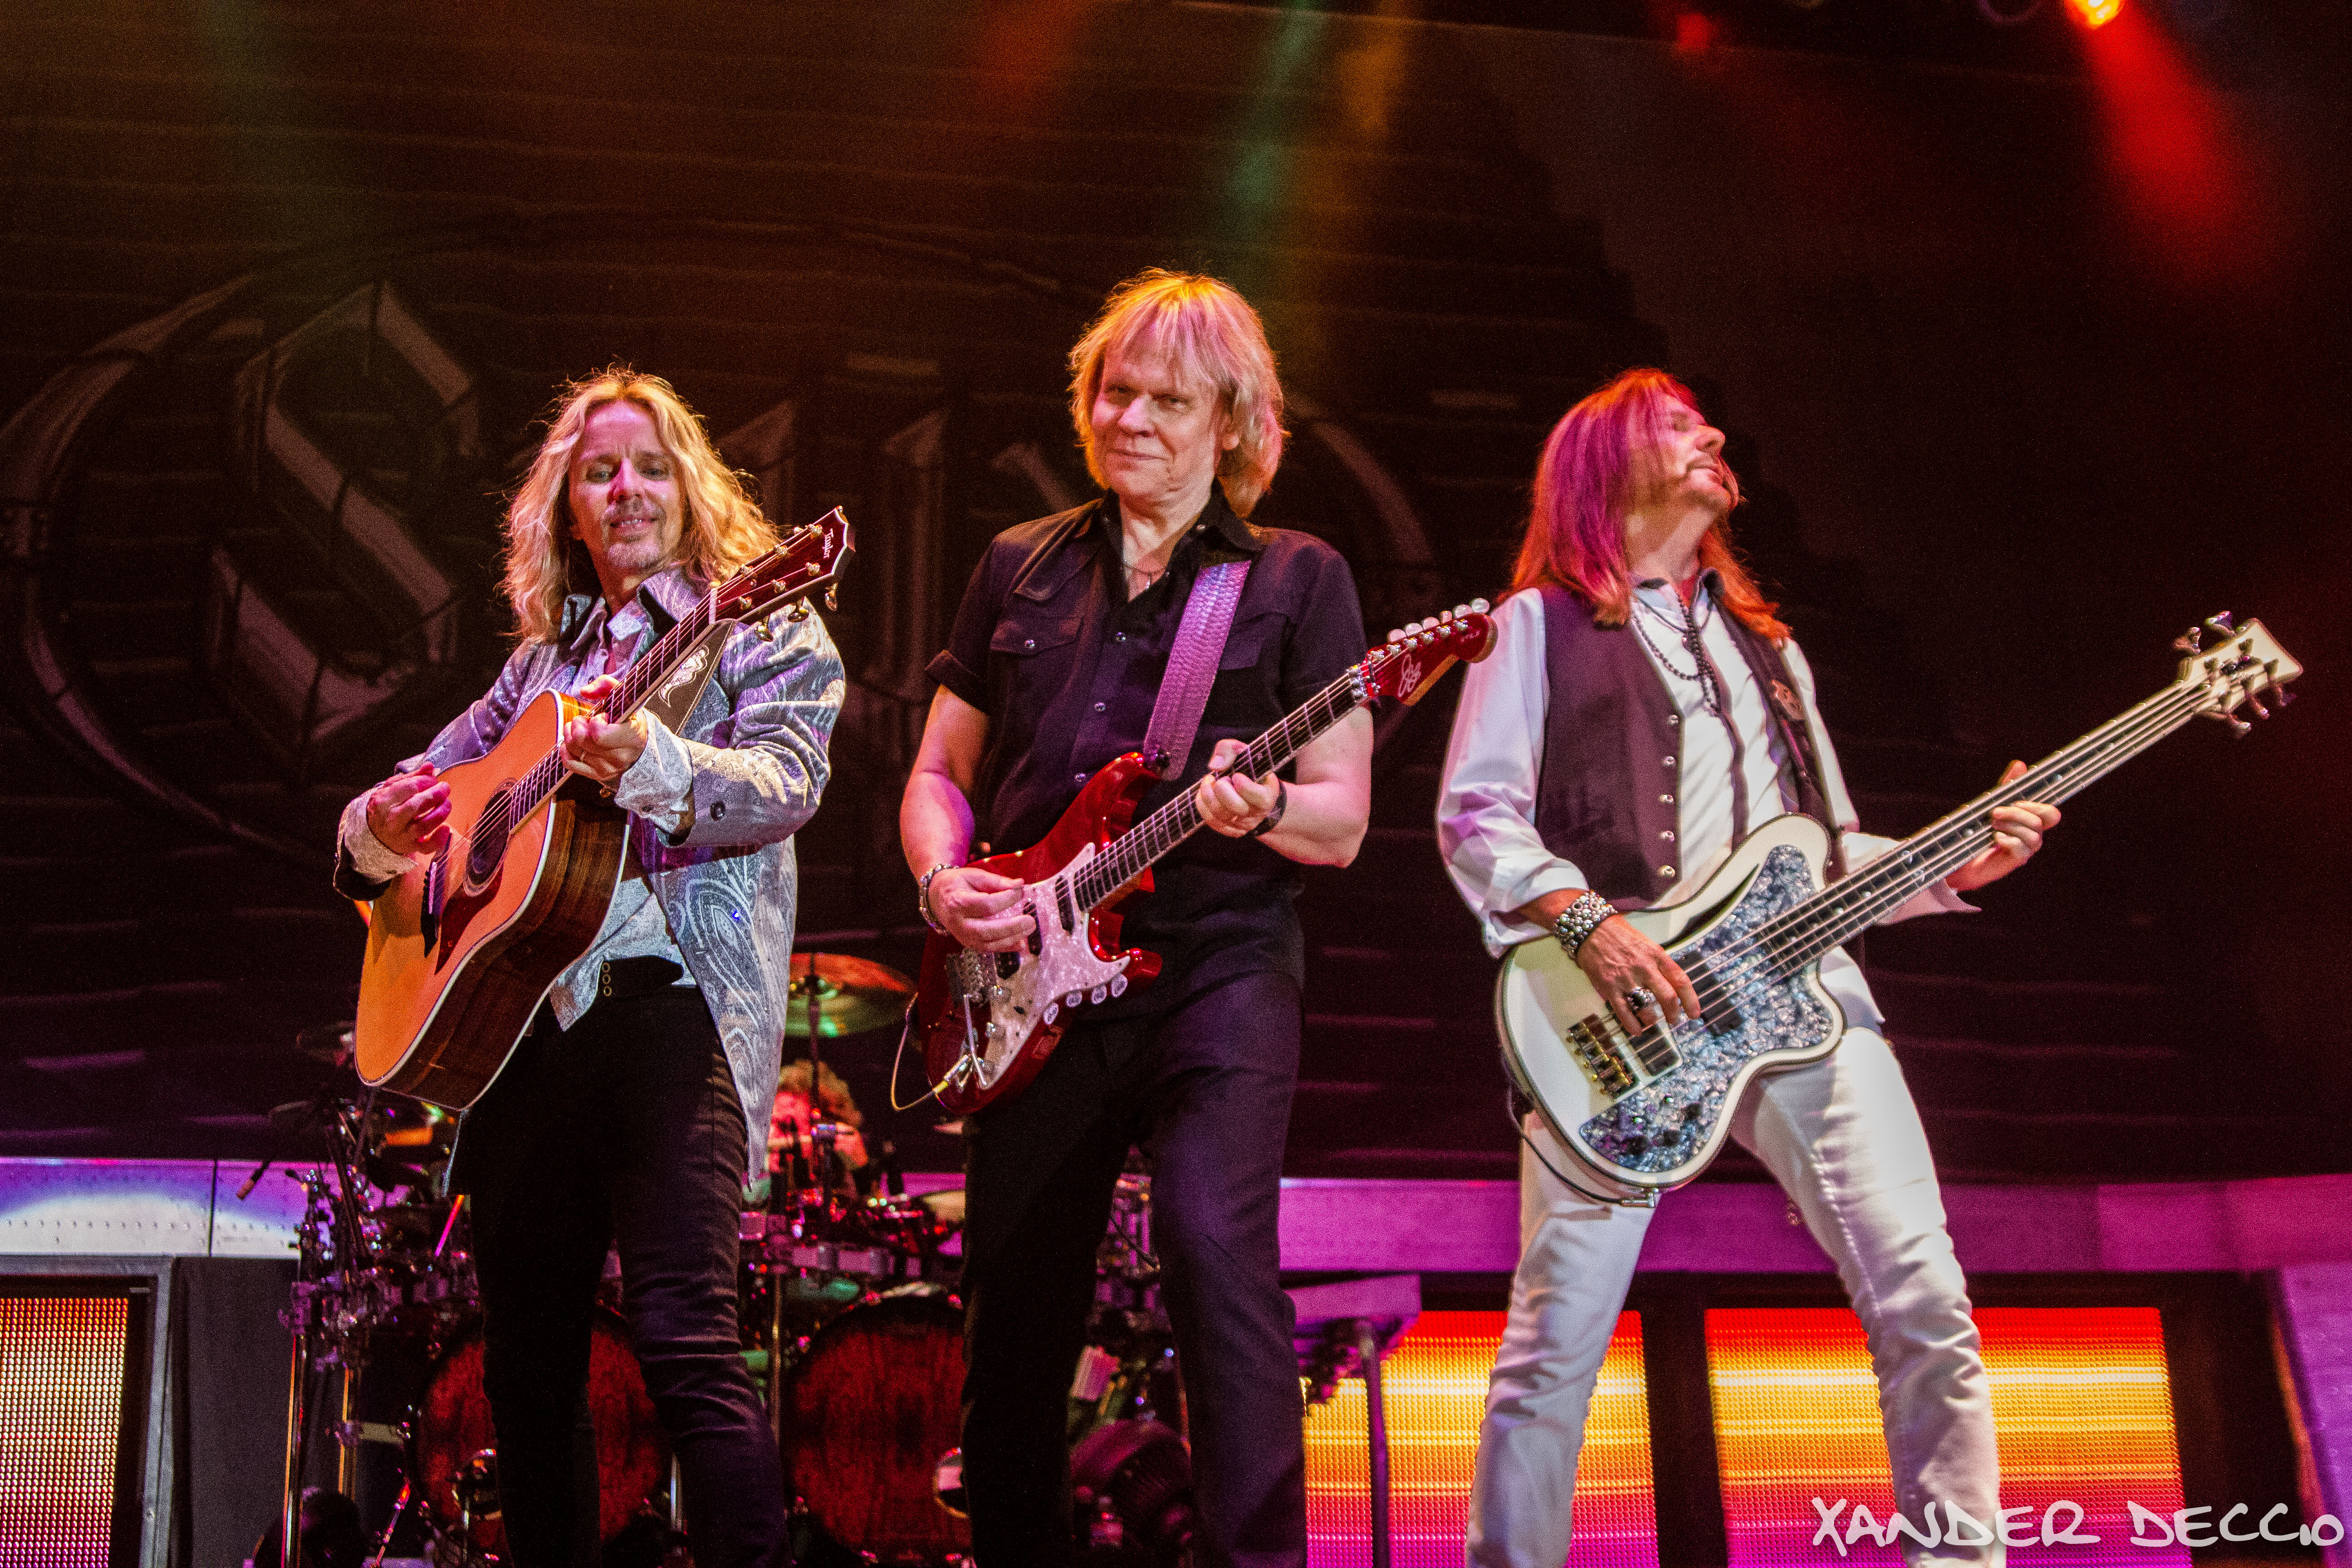 Styx @ Maryhill Winery (Photo By Xander Deccio)